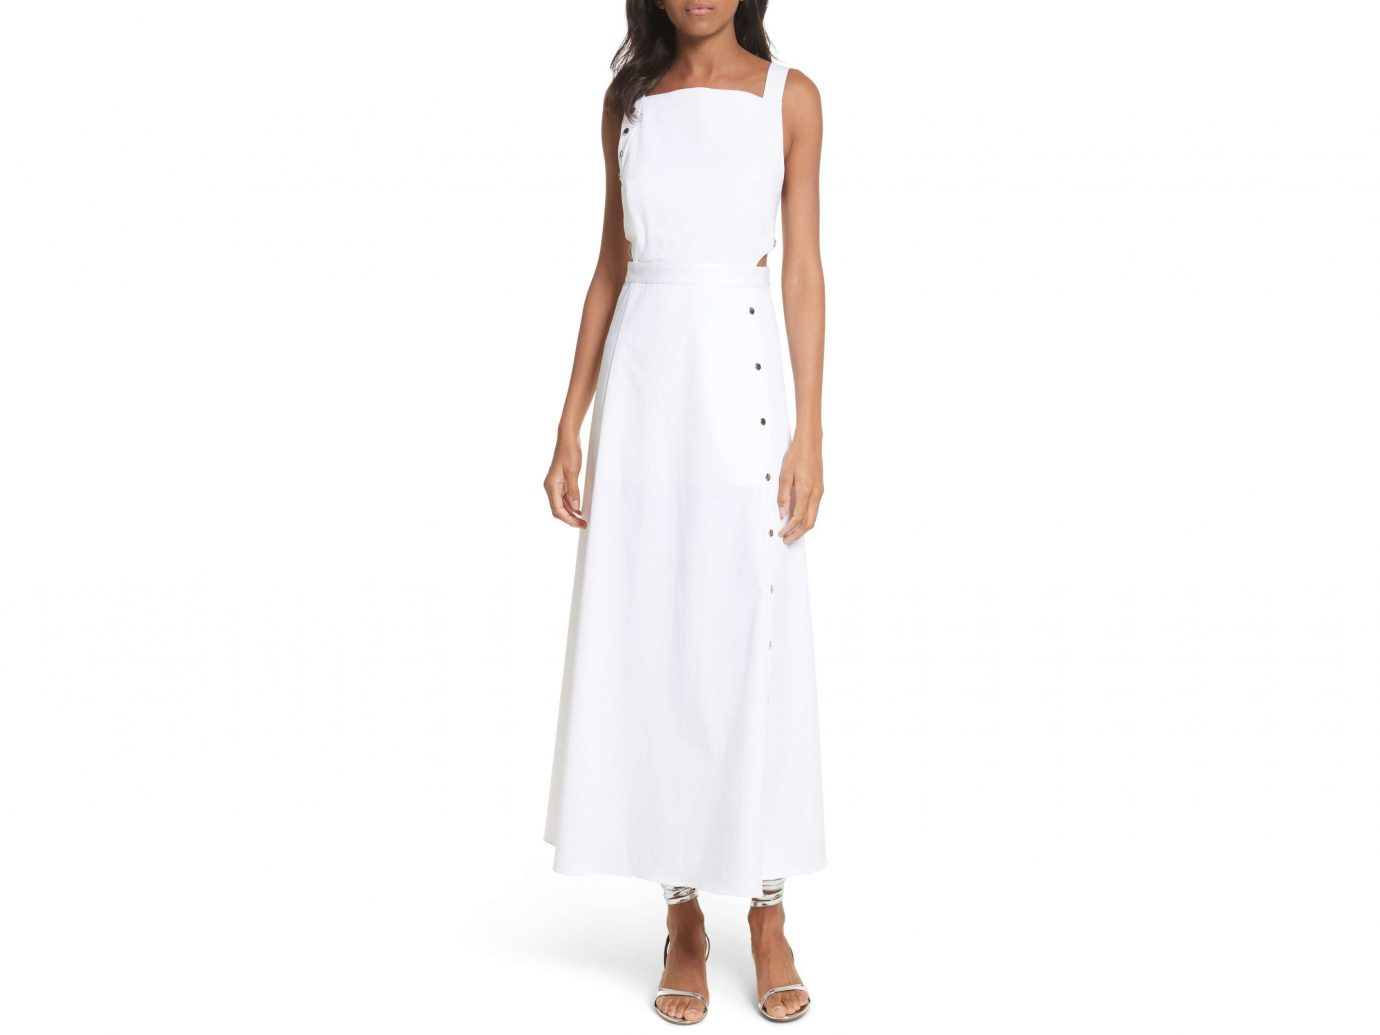 Tibi Dress, White Dresses to Rock This Summer